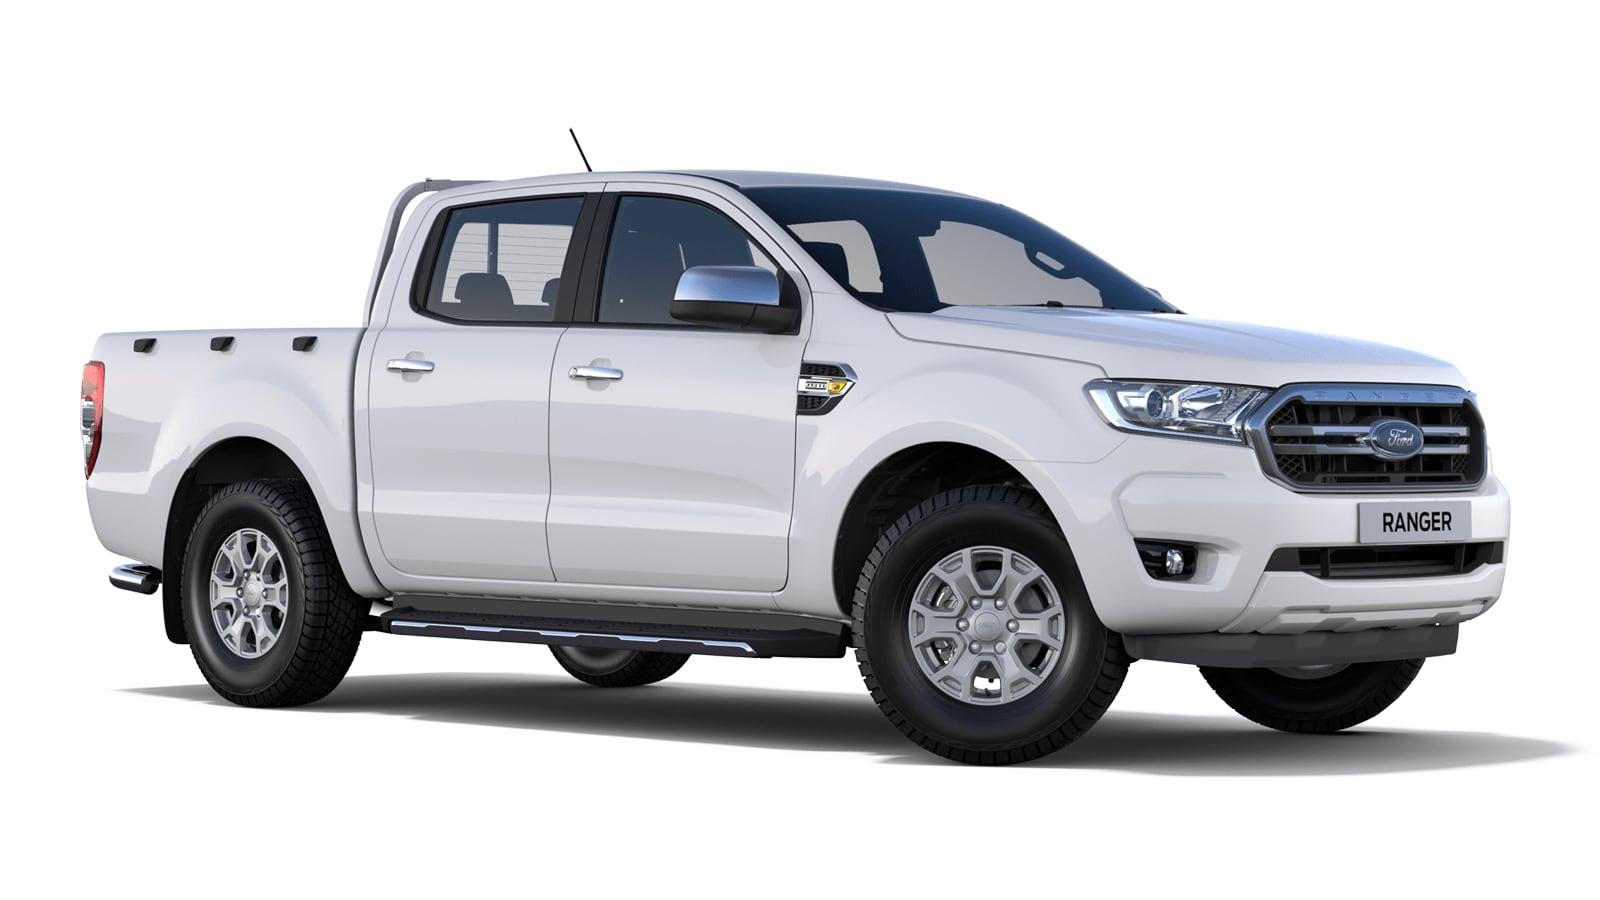 New Ford NEW RANGER at County Garage Ford